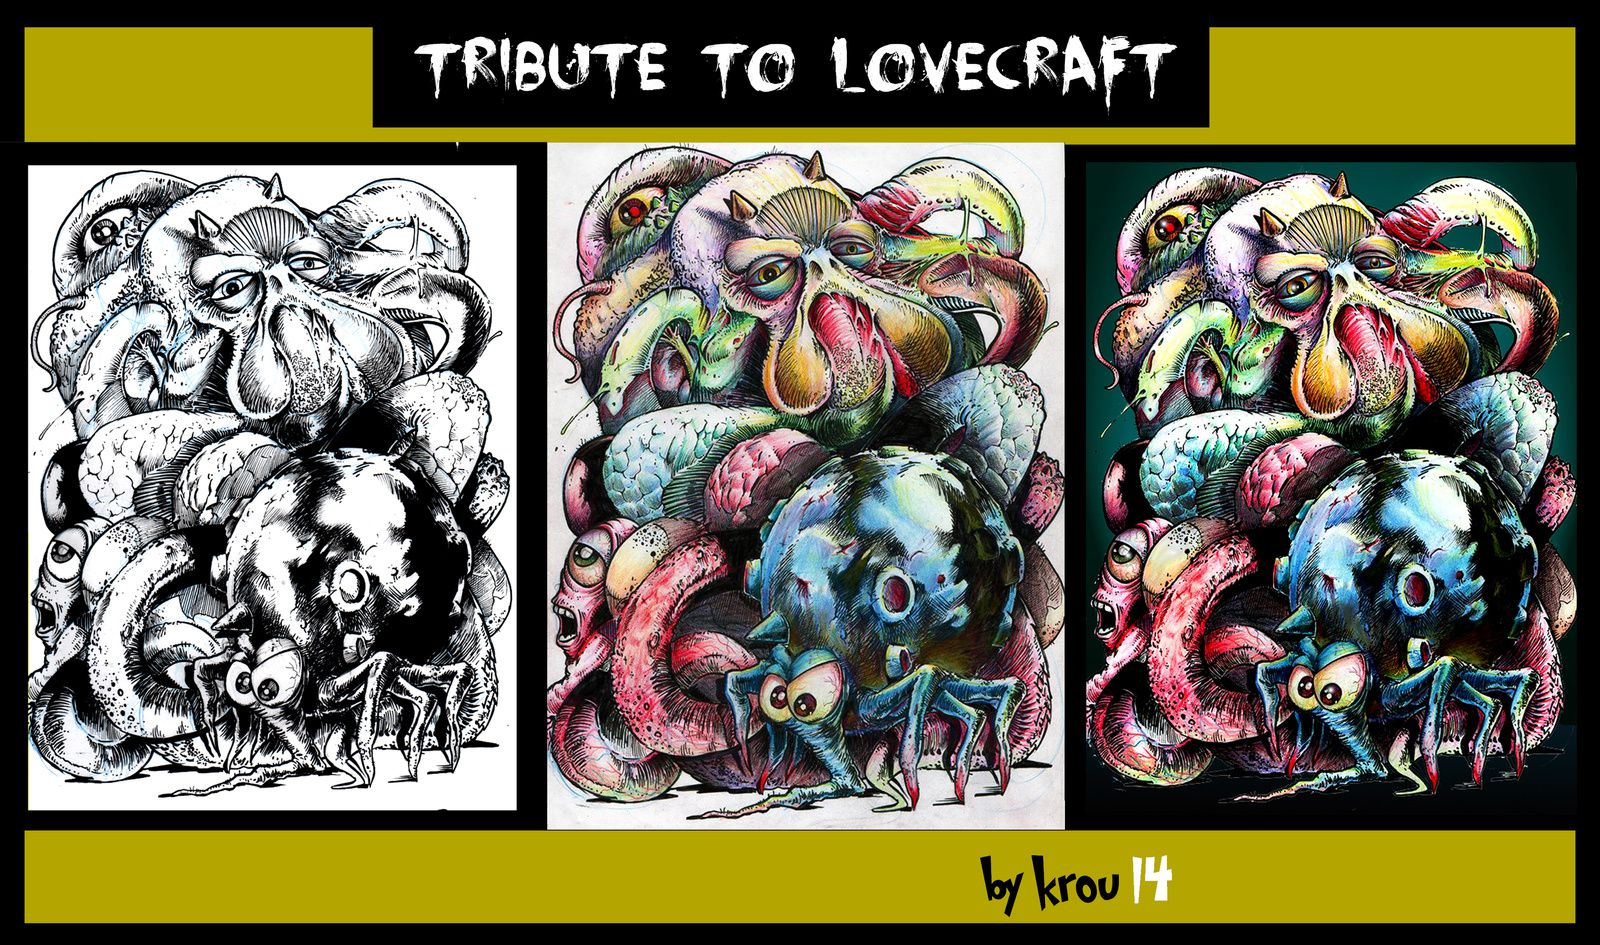 tribute to lovecraft (3 étapes krou 14)